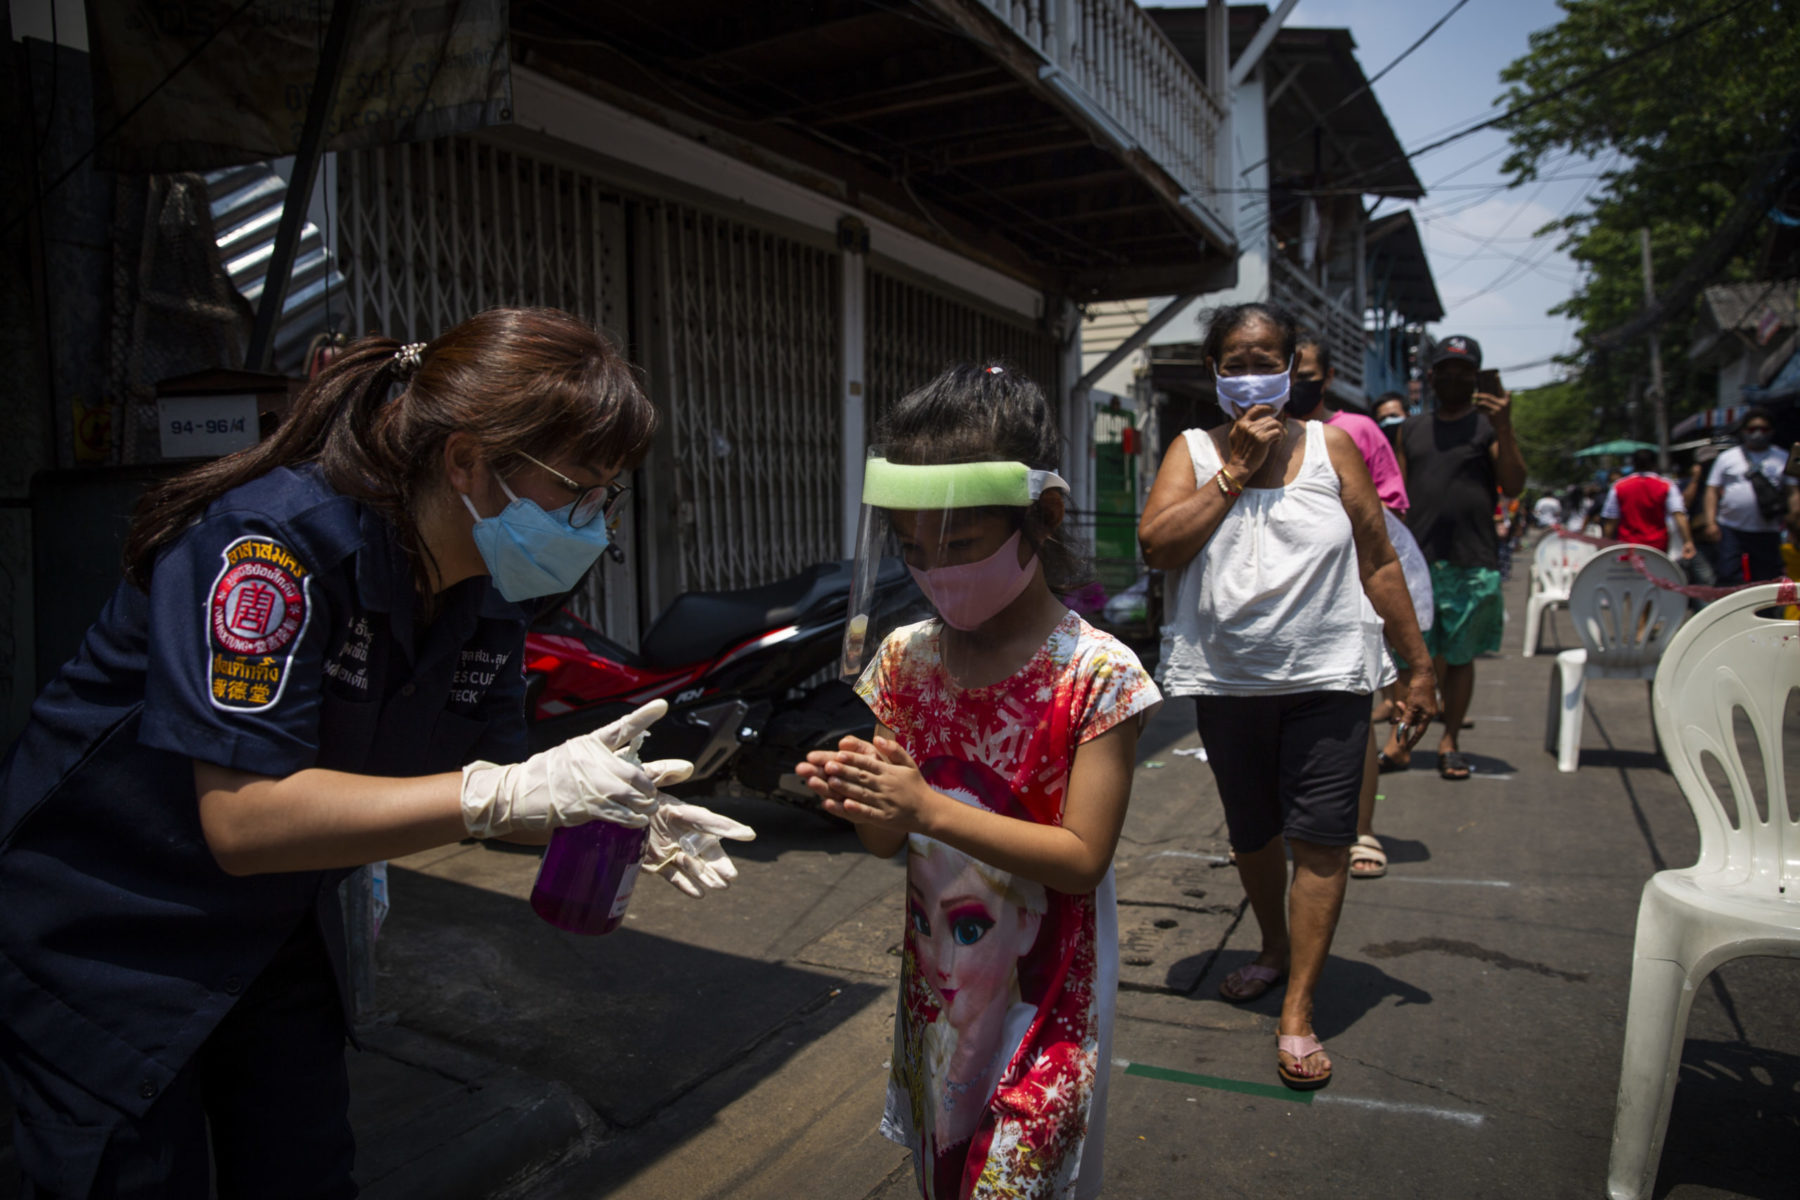 A young child wearing a mask and face shield accepts supplies from volunteer rescue staff.